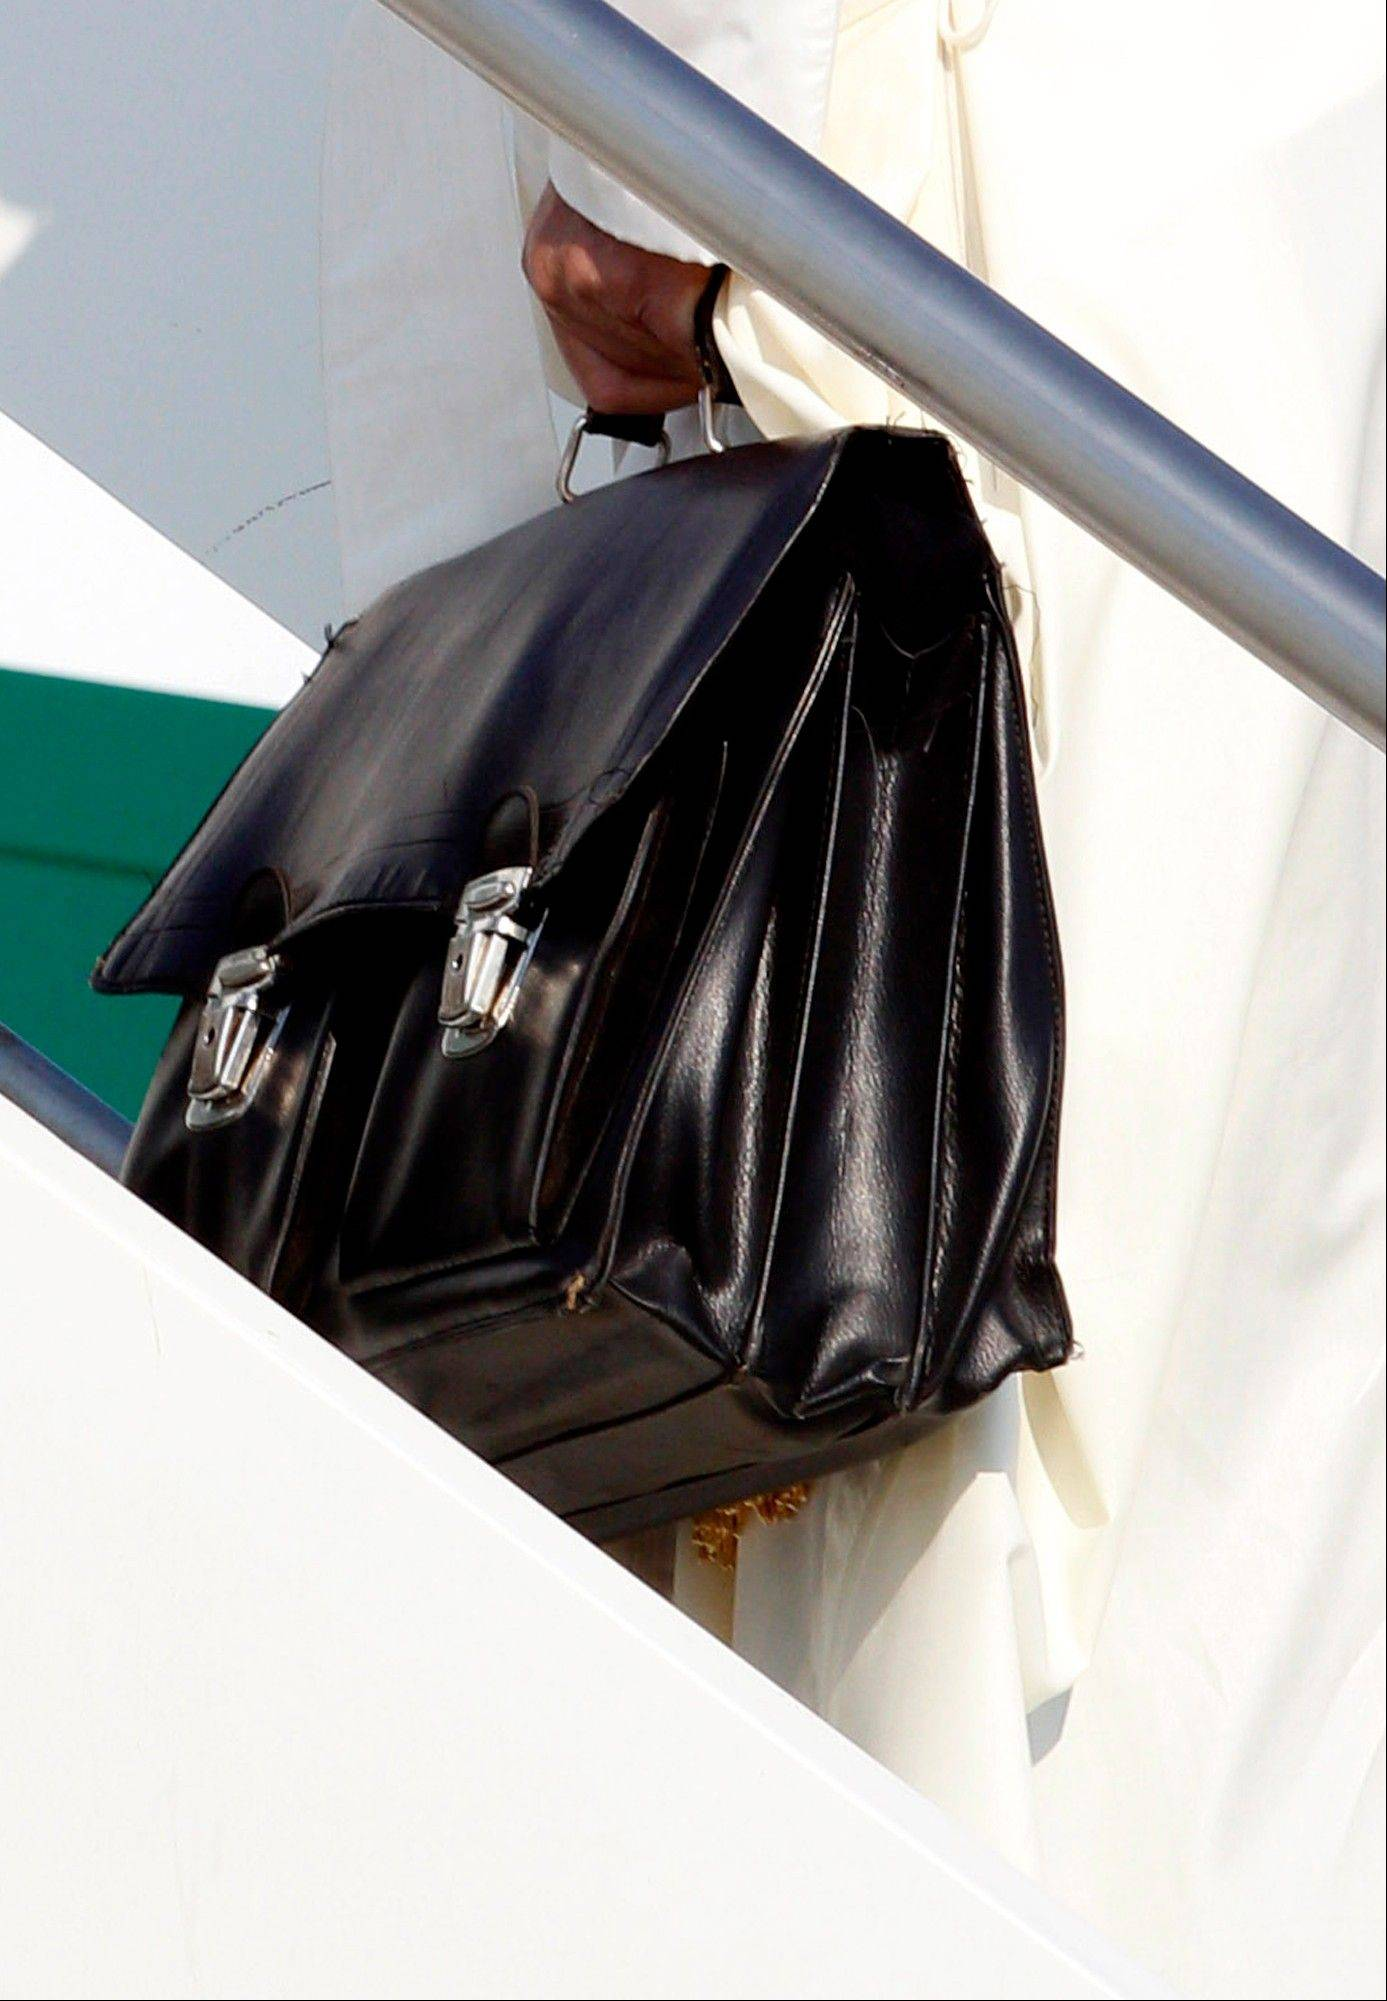 Keeping to his example that the Catholic church must be humble, Francis carried his own black hand luggage. He even kept holding it with his left hand while he used his left to shake hands with some of the VIPs who turned out to wish him well.